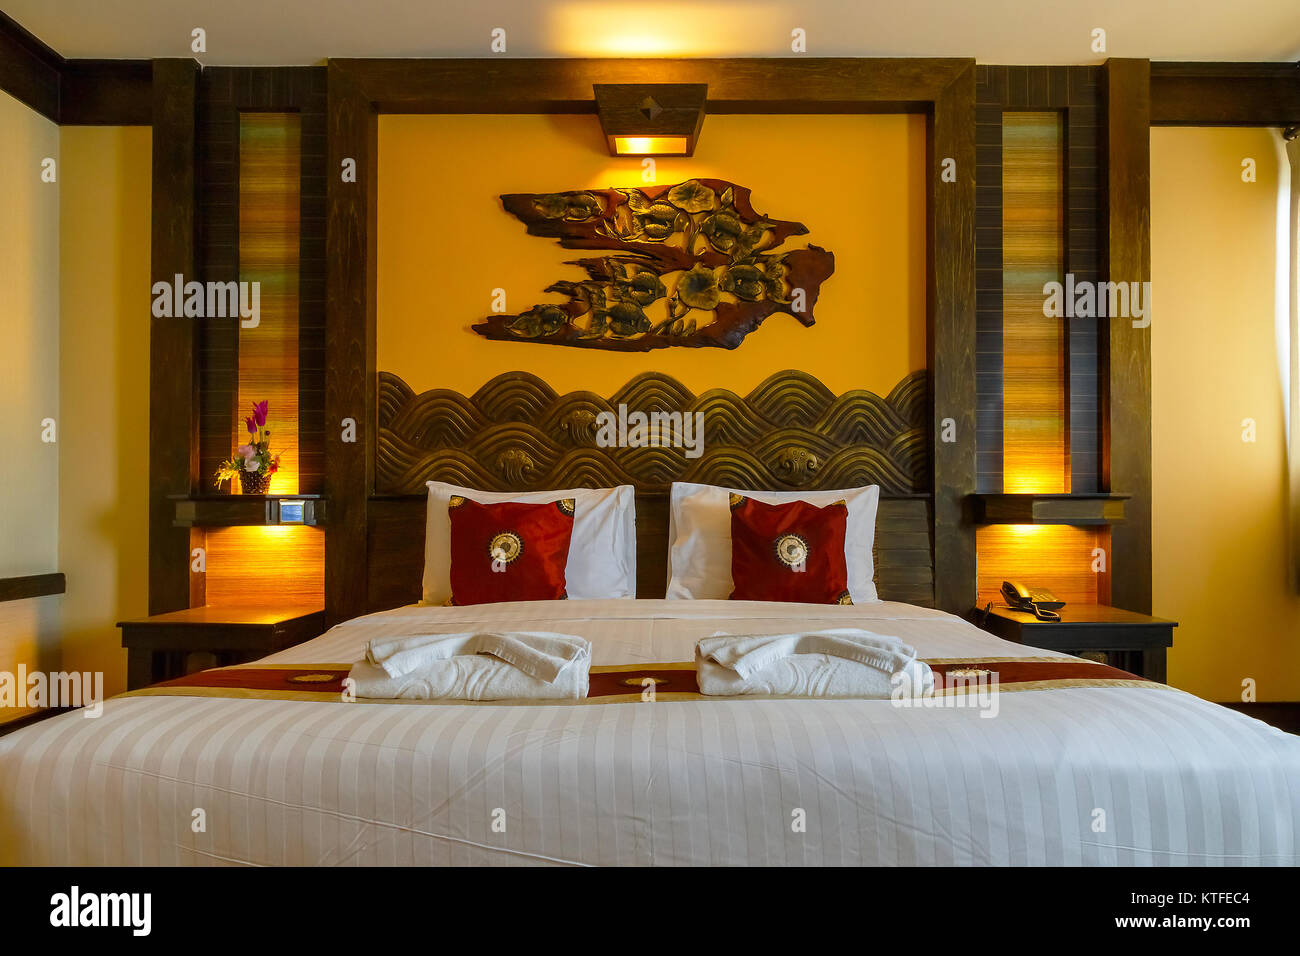 BANGKOK THAILAND - NOVEMBER 4 2016: Interior of a bedroom decorated with northern Thai & Bedroom Decorated Stock Photos \u0026 Bedroom Decorated Stock Images - Alamy